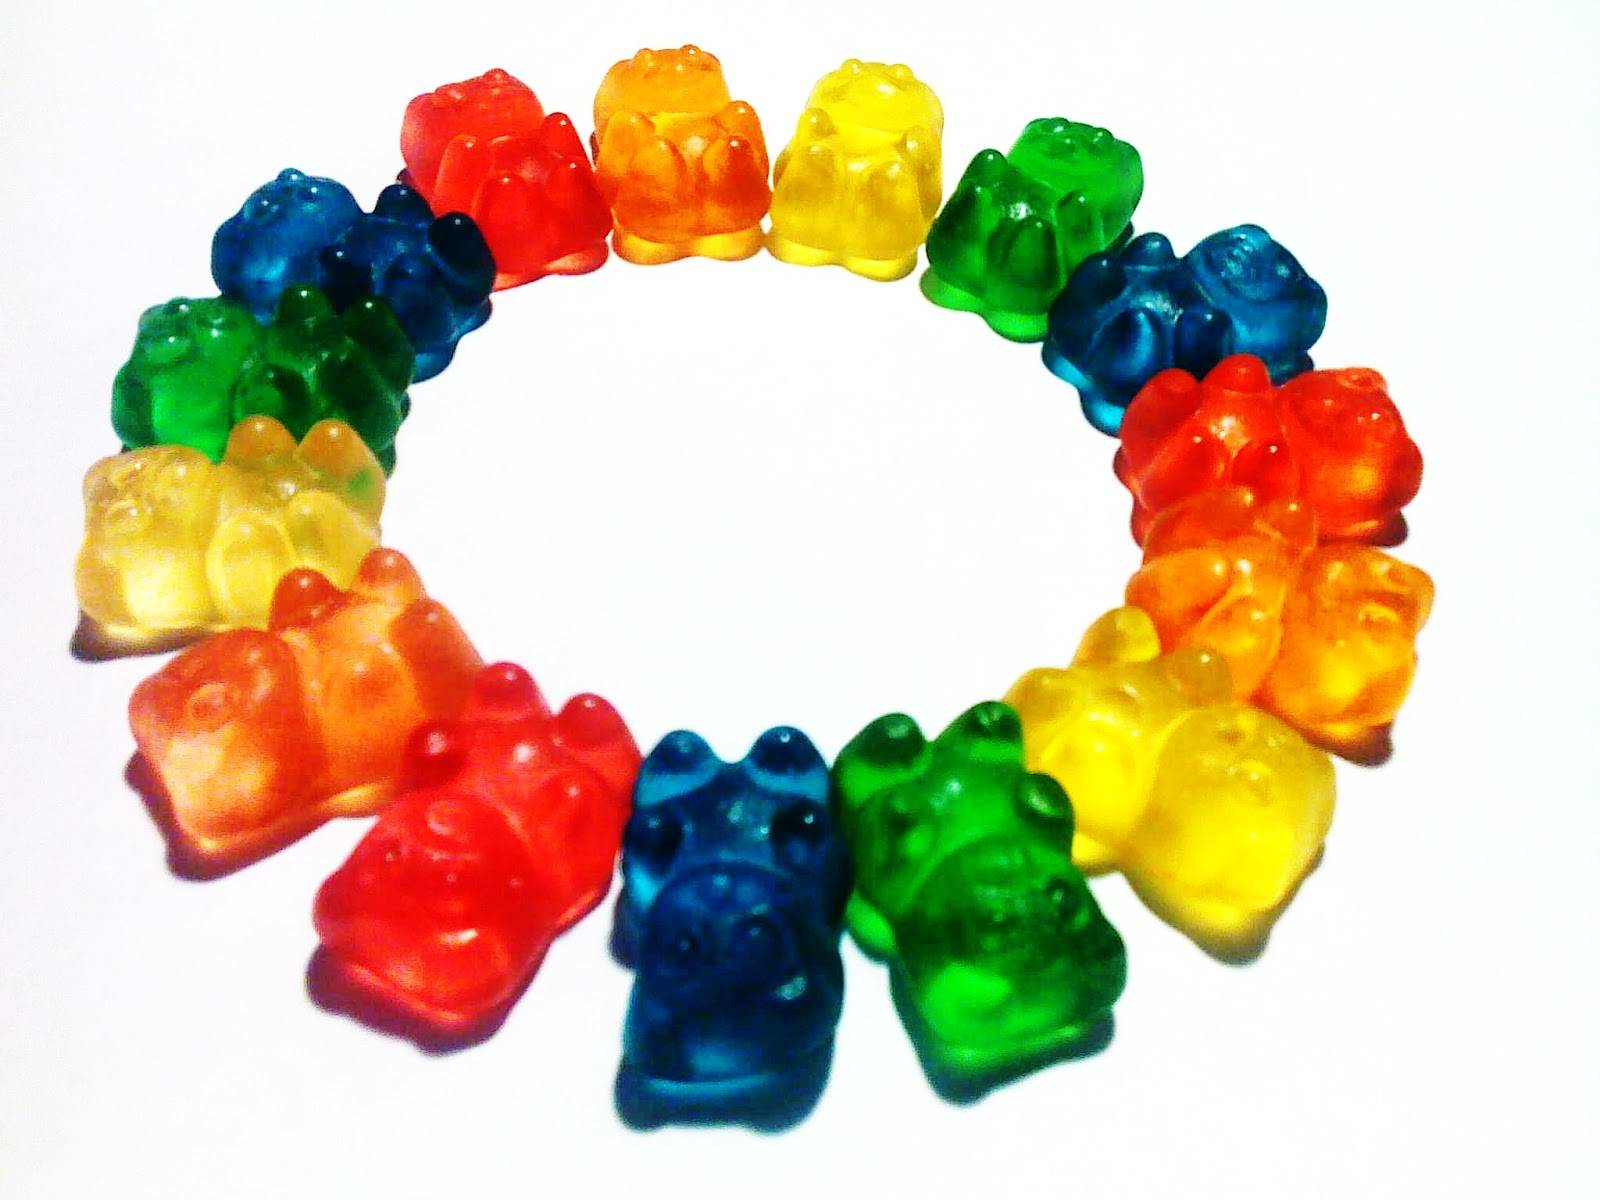 Clip Art Gummy Bear Clipart gummy bear clipart kid 61 images of you can use these free cliparts for